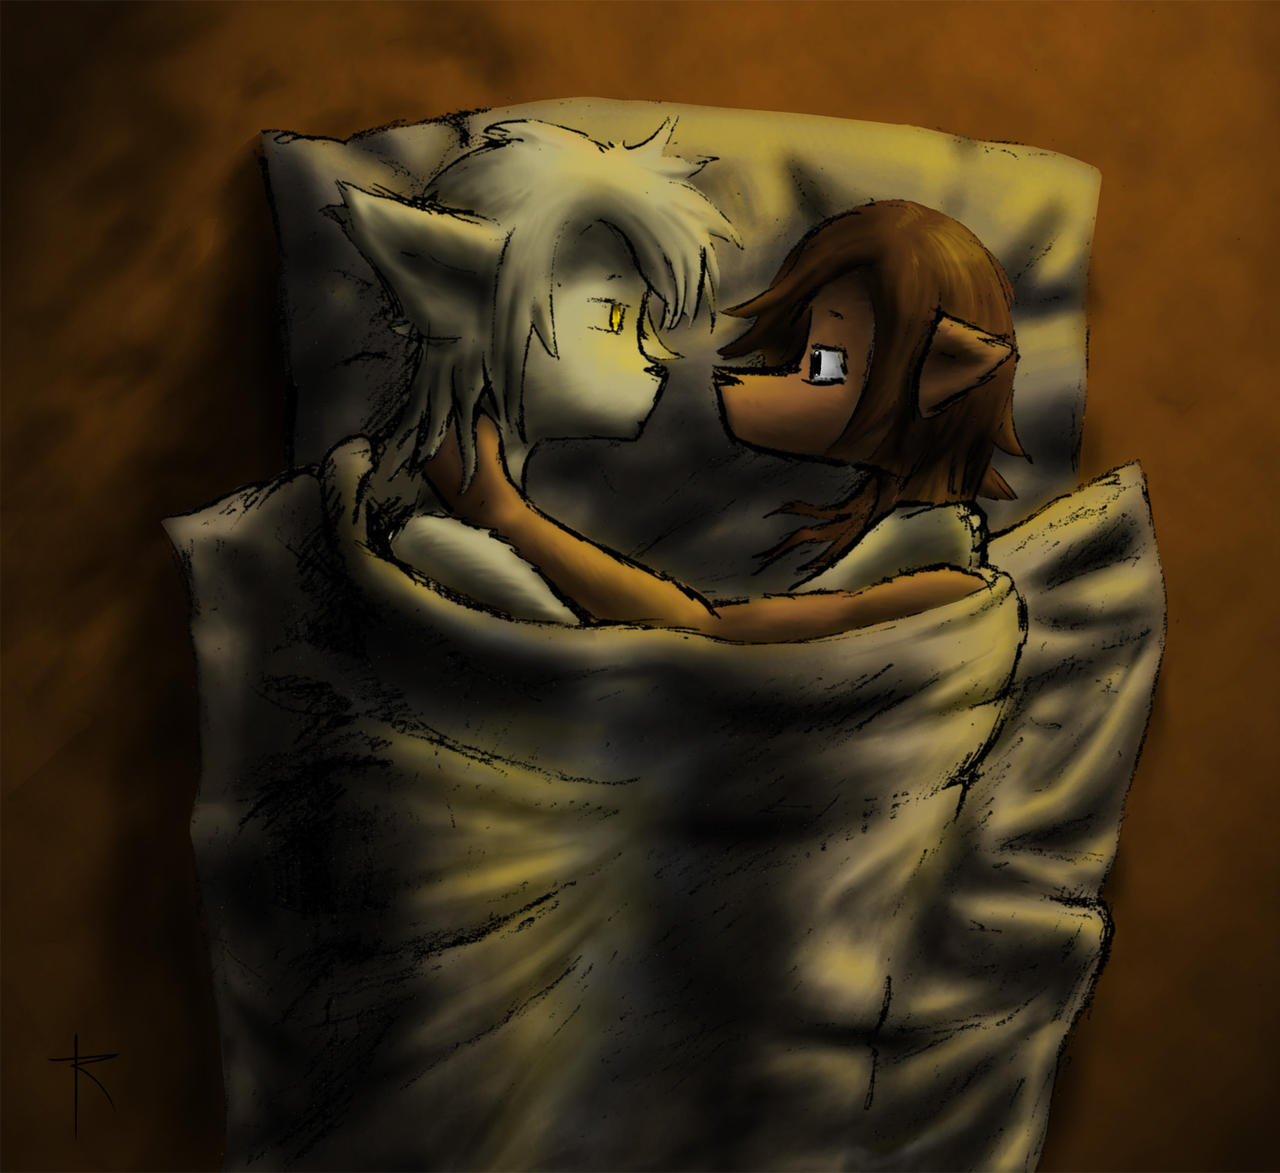 Two in warmth